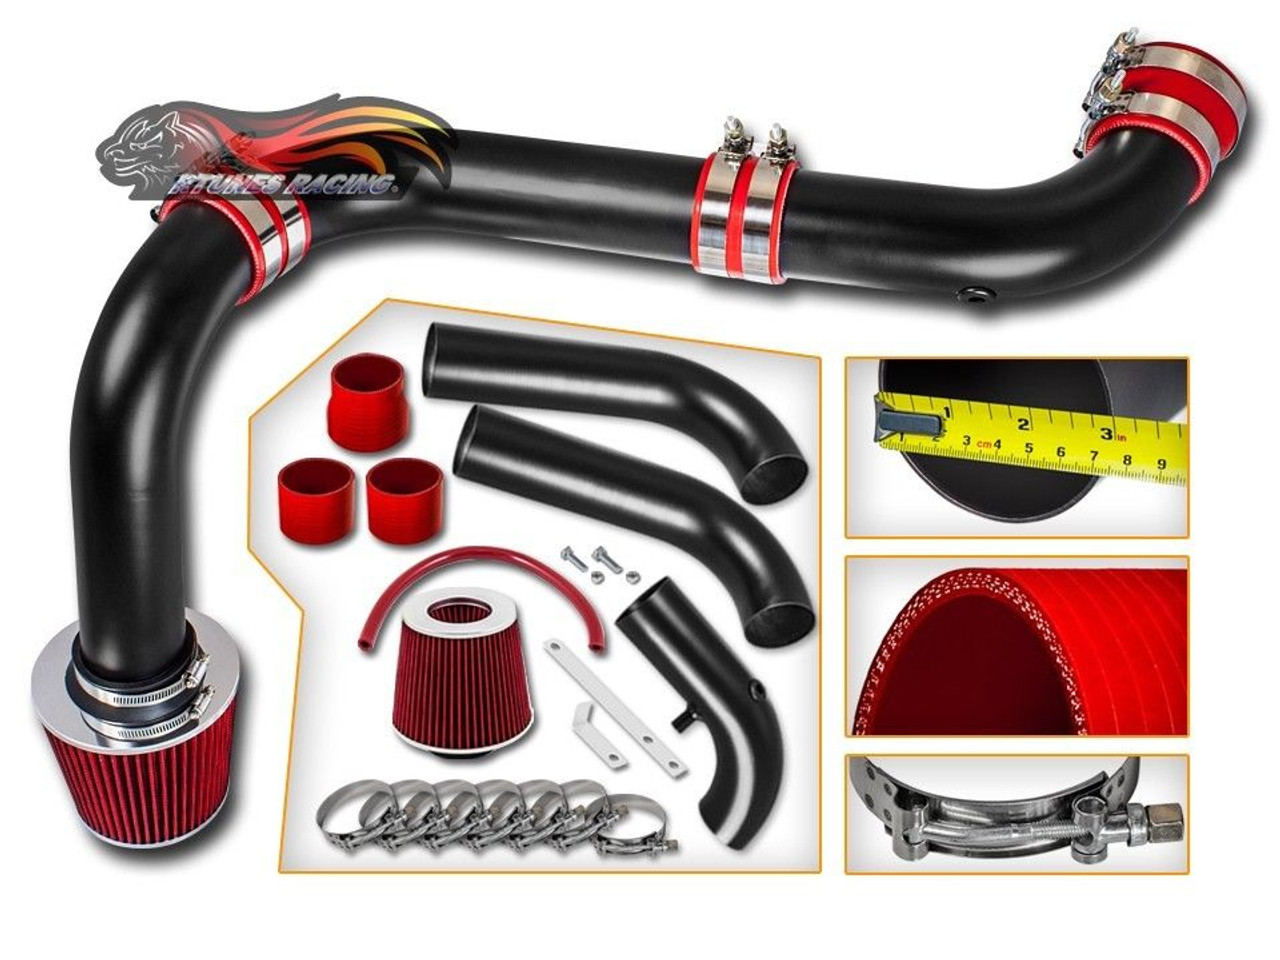 Cold Air Intake For Dodge Ram 1500 5 7 Hemi >> Cold Air Intake Kit For Dodge Ram 1500 2500 3500 Hemi 2003 2008 With 5 7l V8 Engine